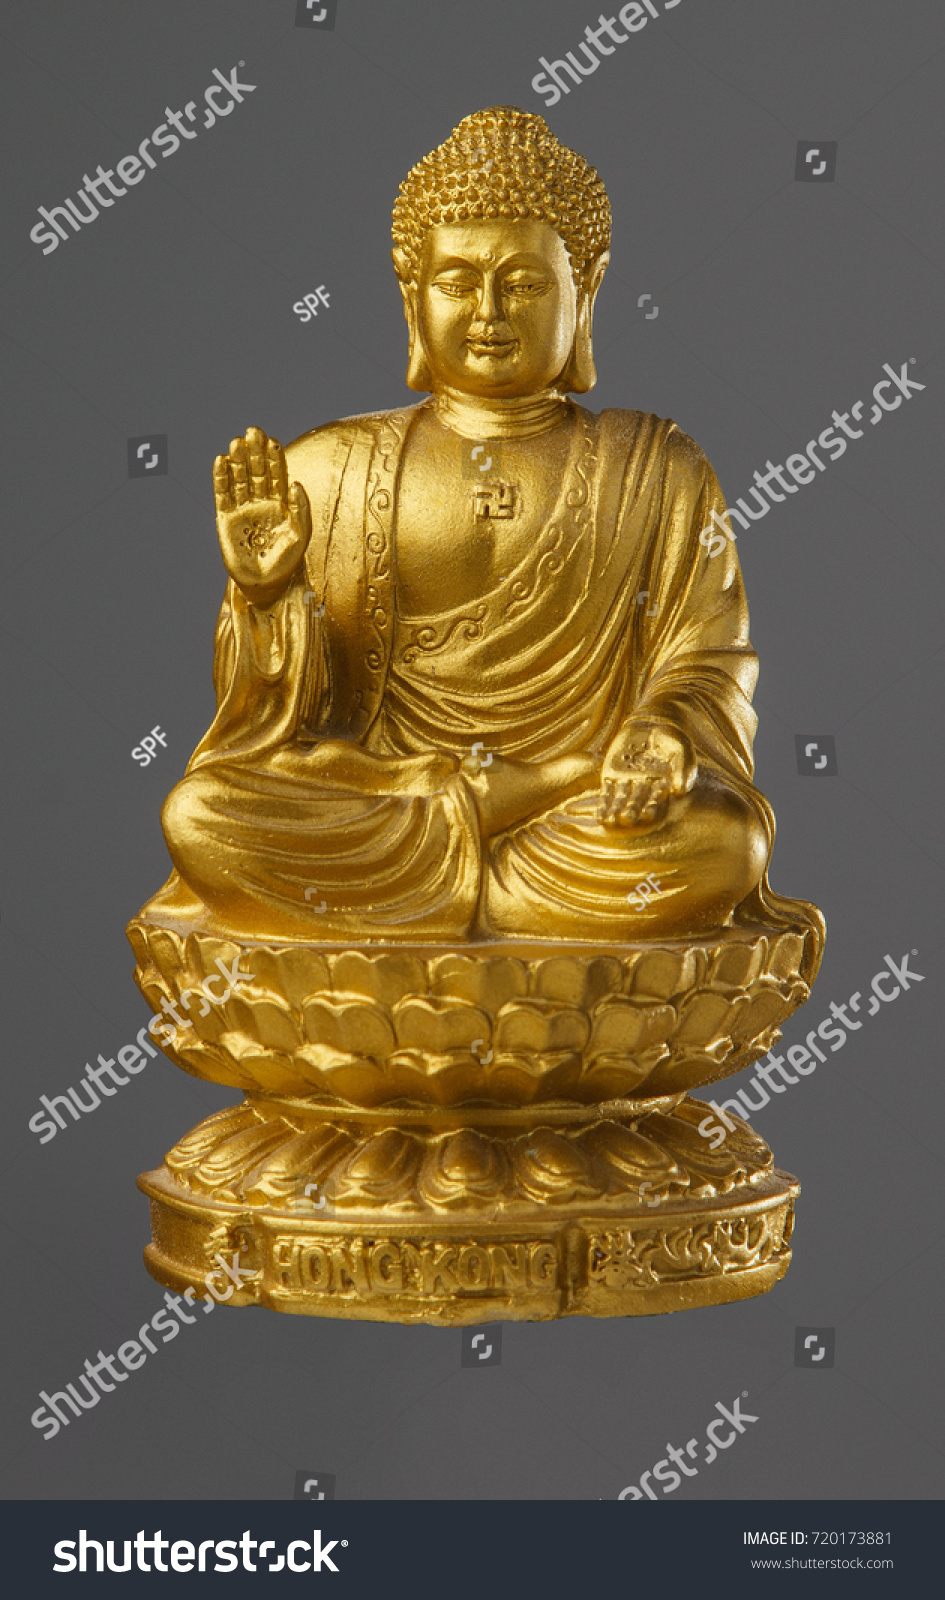 The Statue Of The Golden Buddha Sitting On A Lotus Flower And The